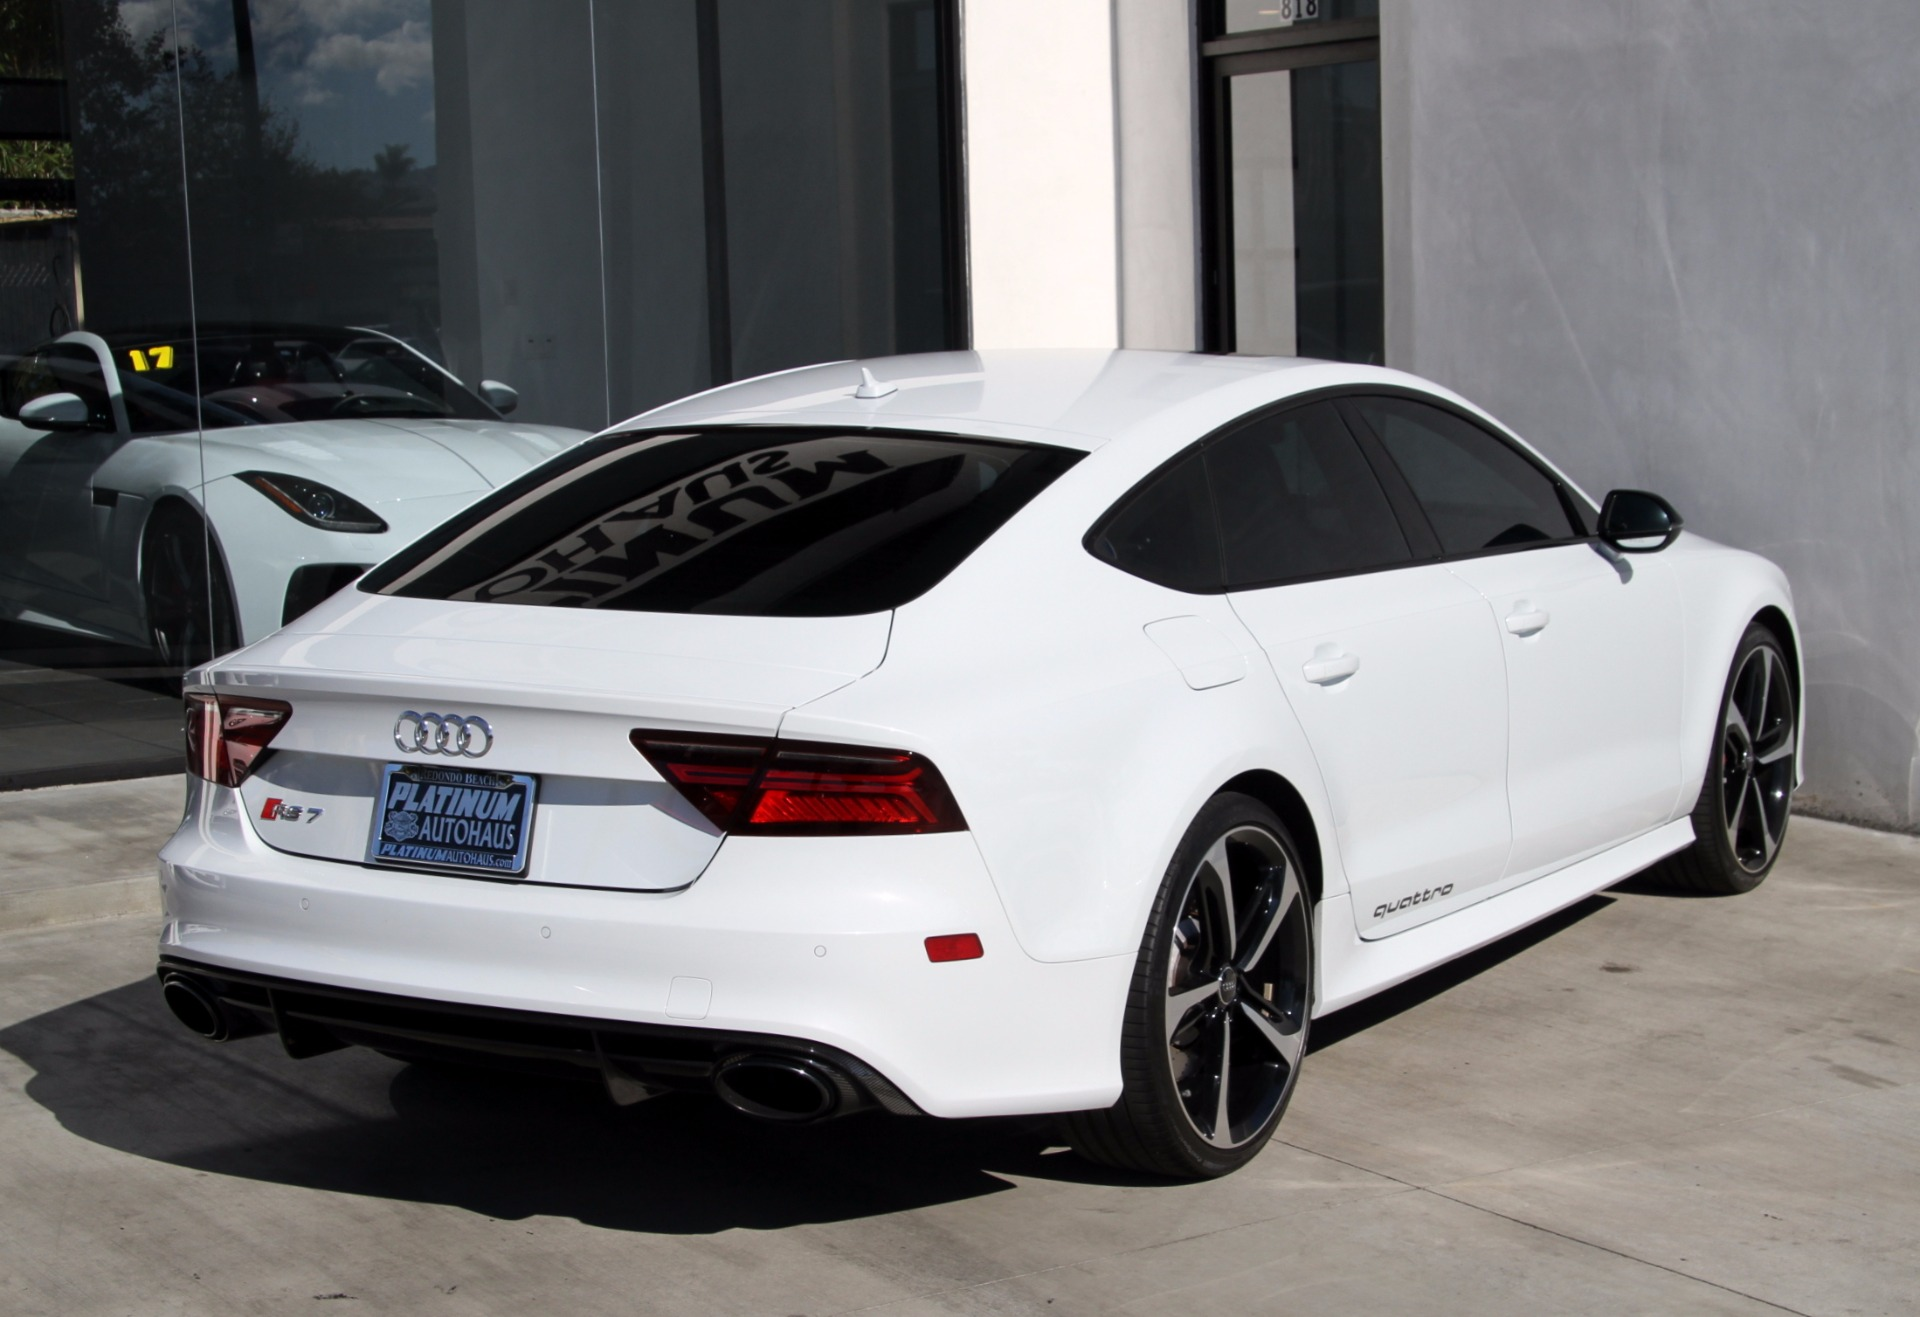 Audi Dealership Near Me >> 2016 Audi RS 7 4.0T quattro Prestige Stock # 6032 for sale ...